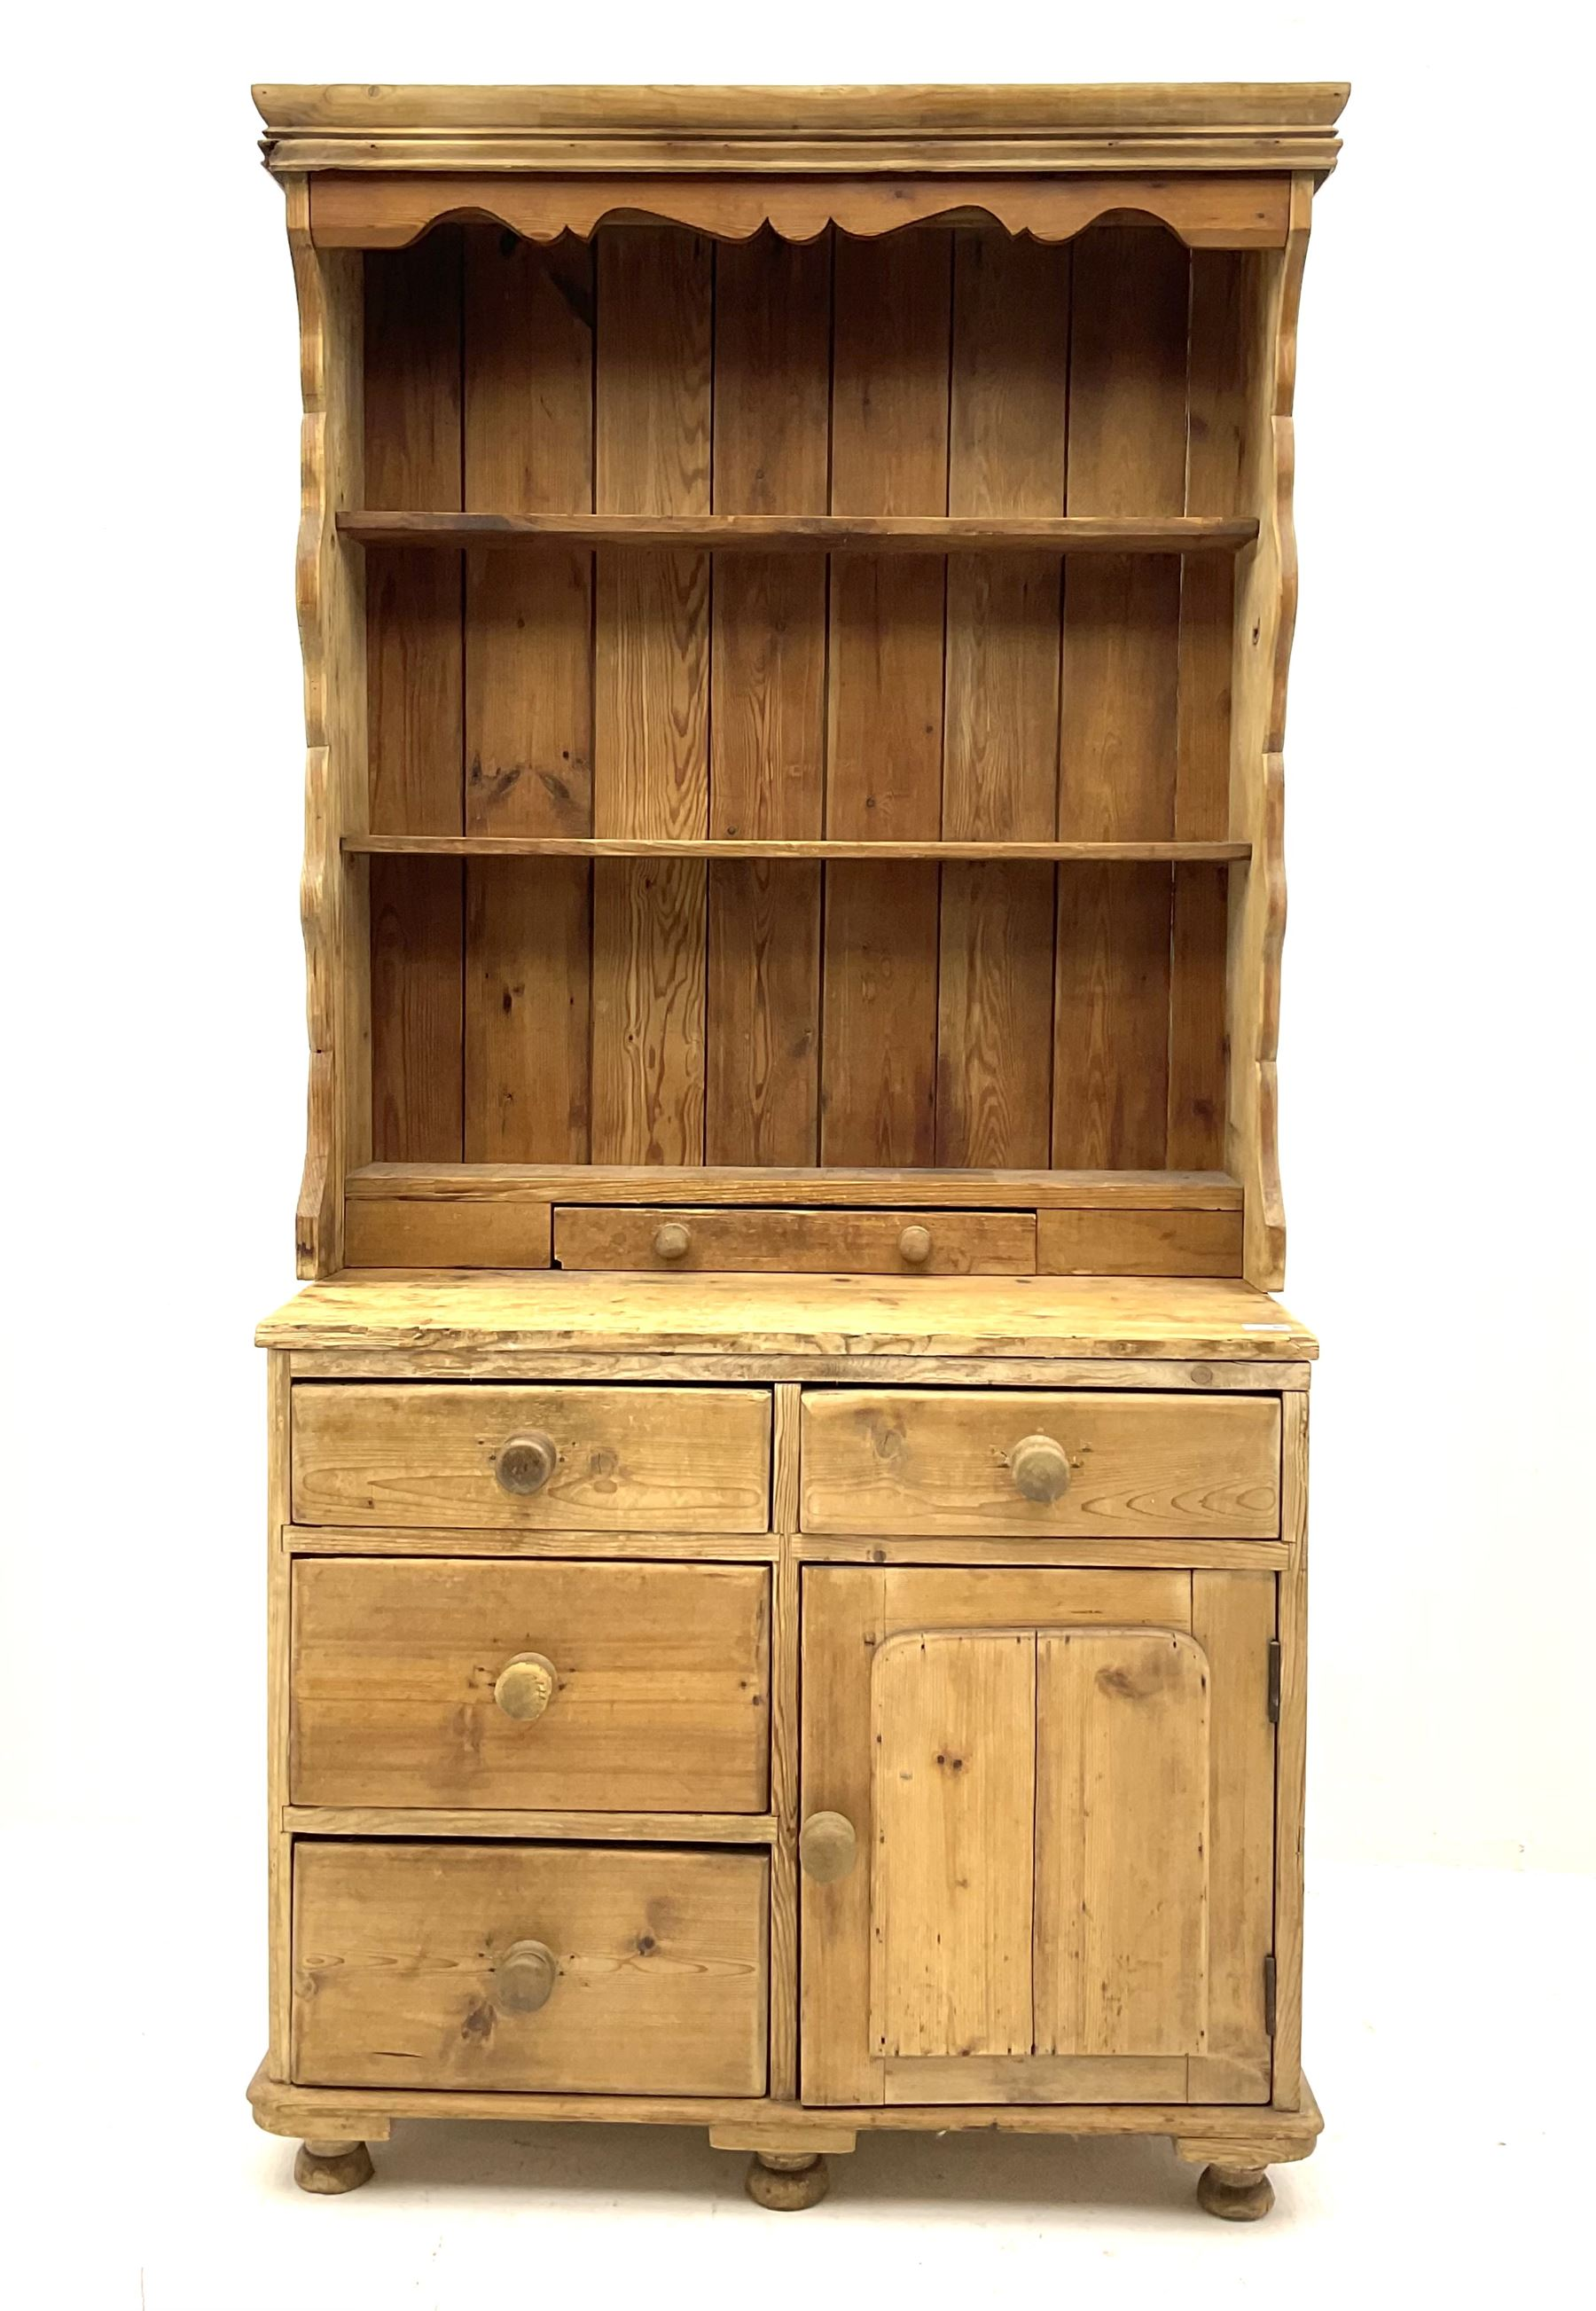 19th century and later pine chest with plate rack